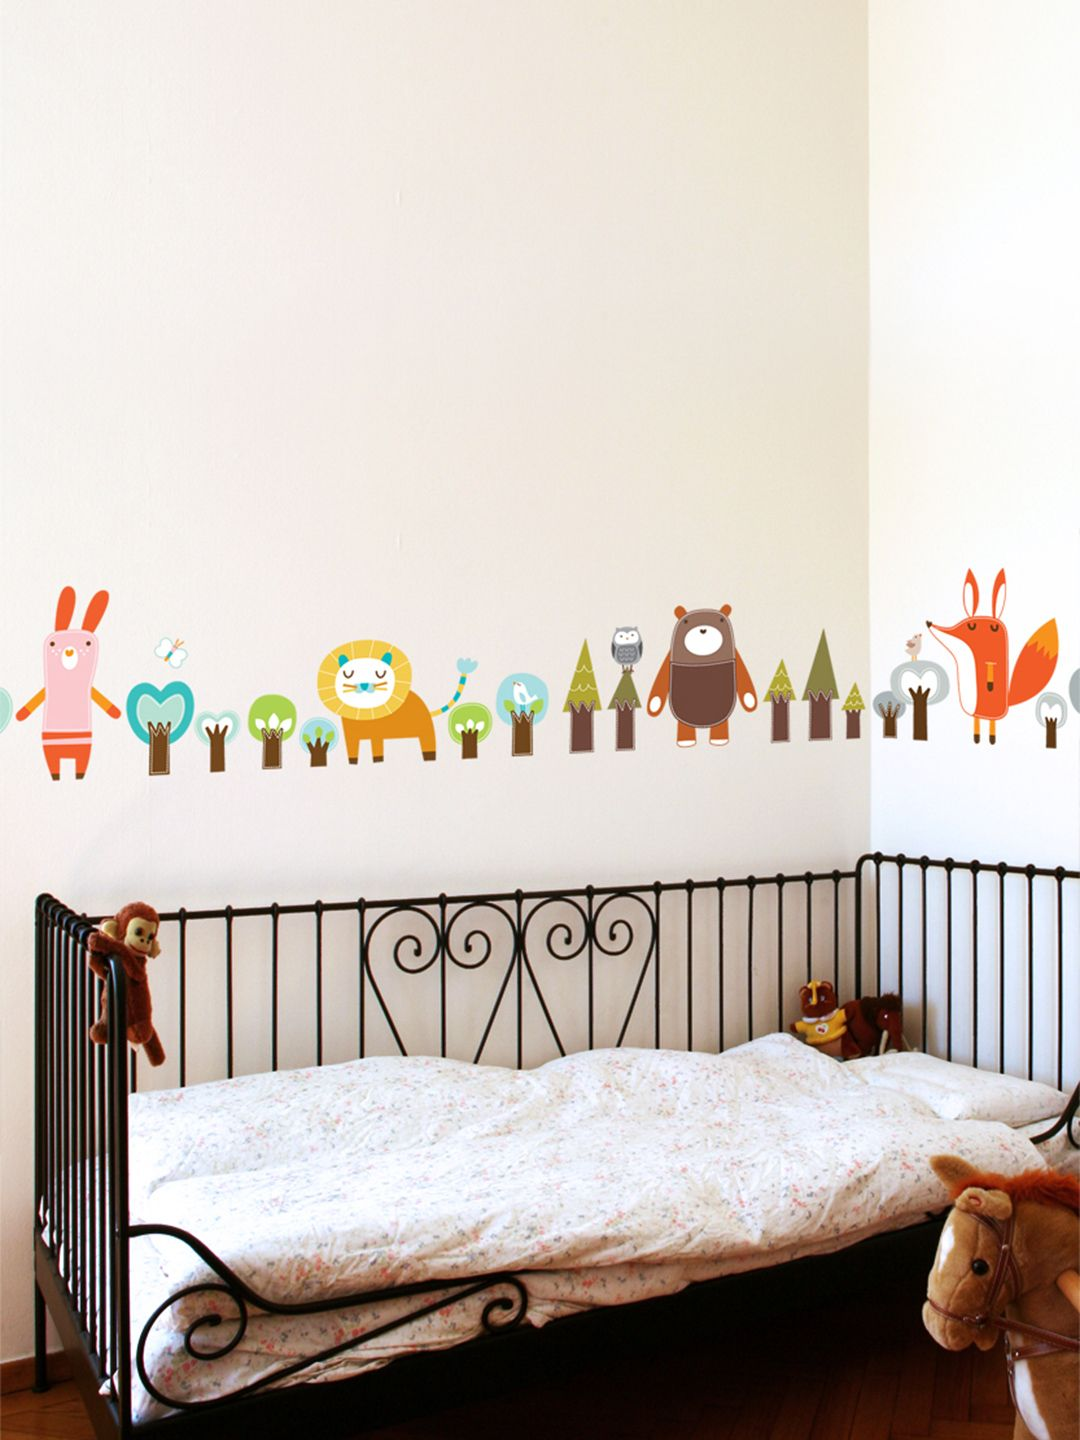 Forest friends removable wall decal nursery room decor